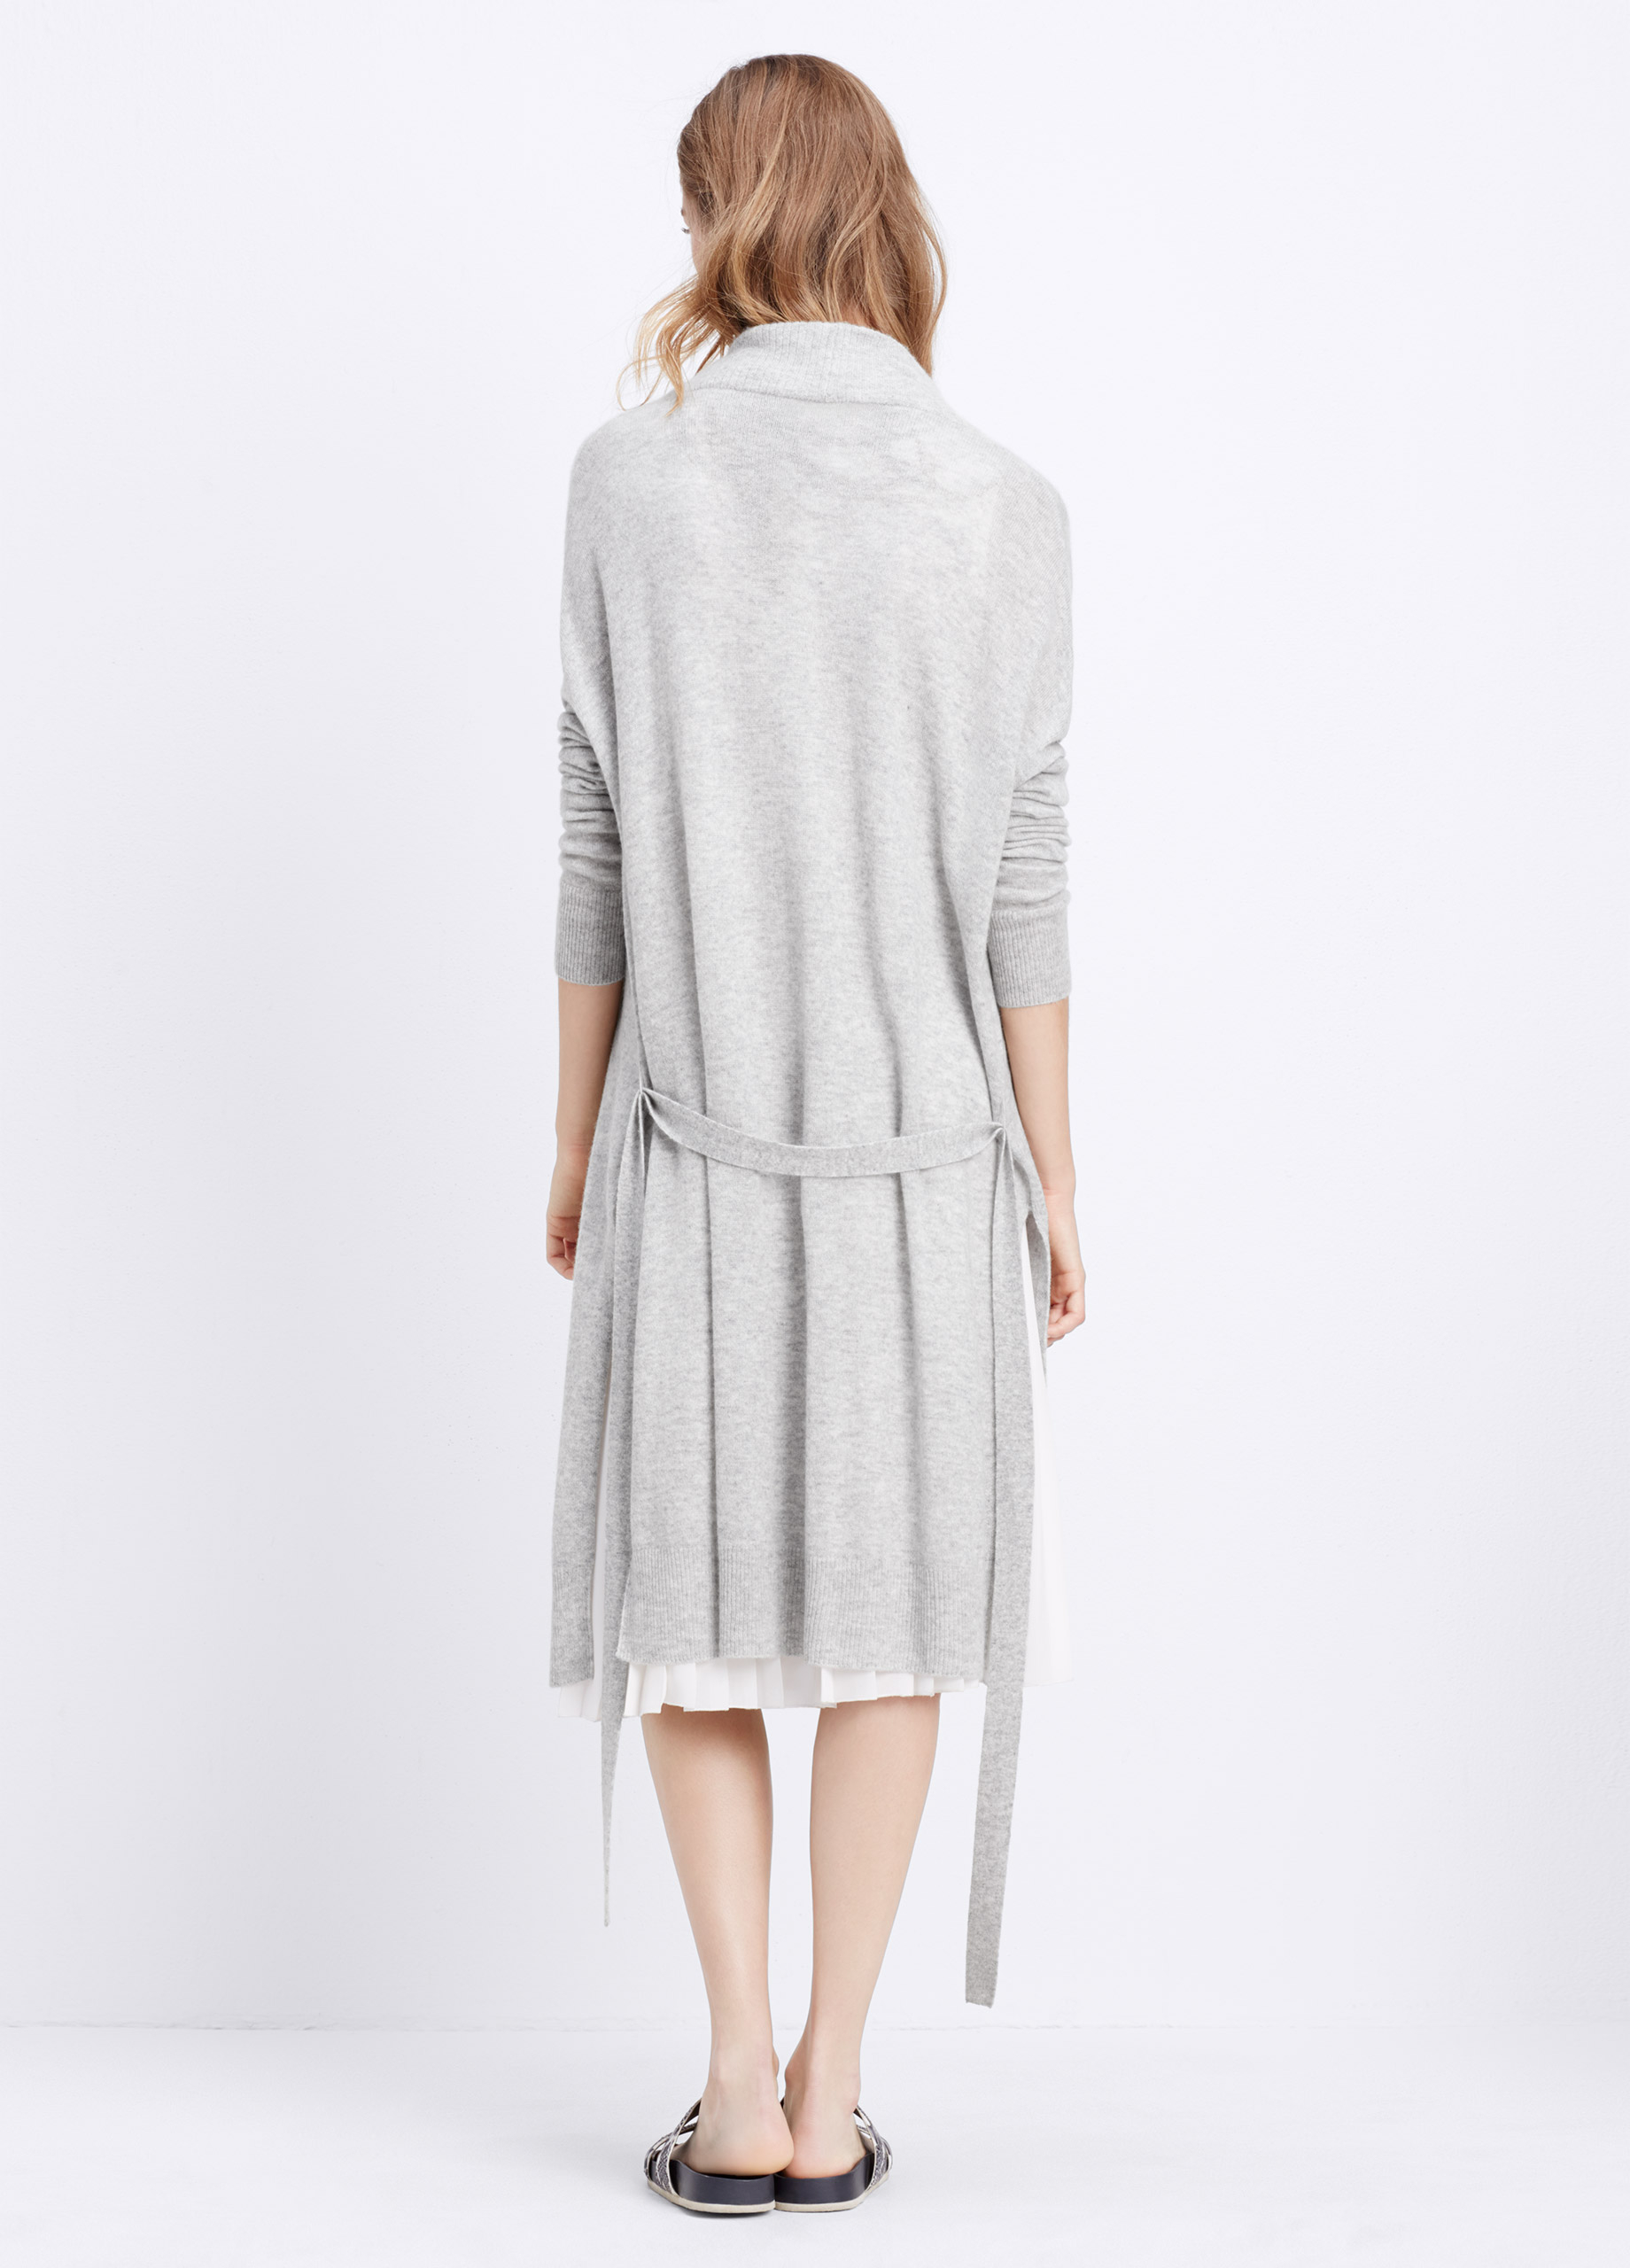 Women's Lightweight Autumn and Winter Cardigan Learn How to Wear